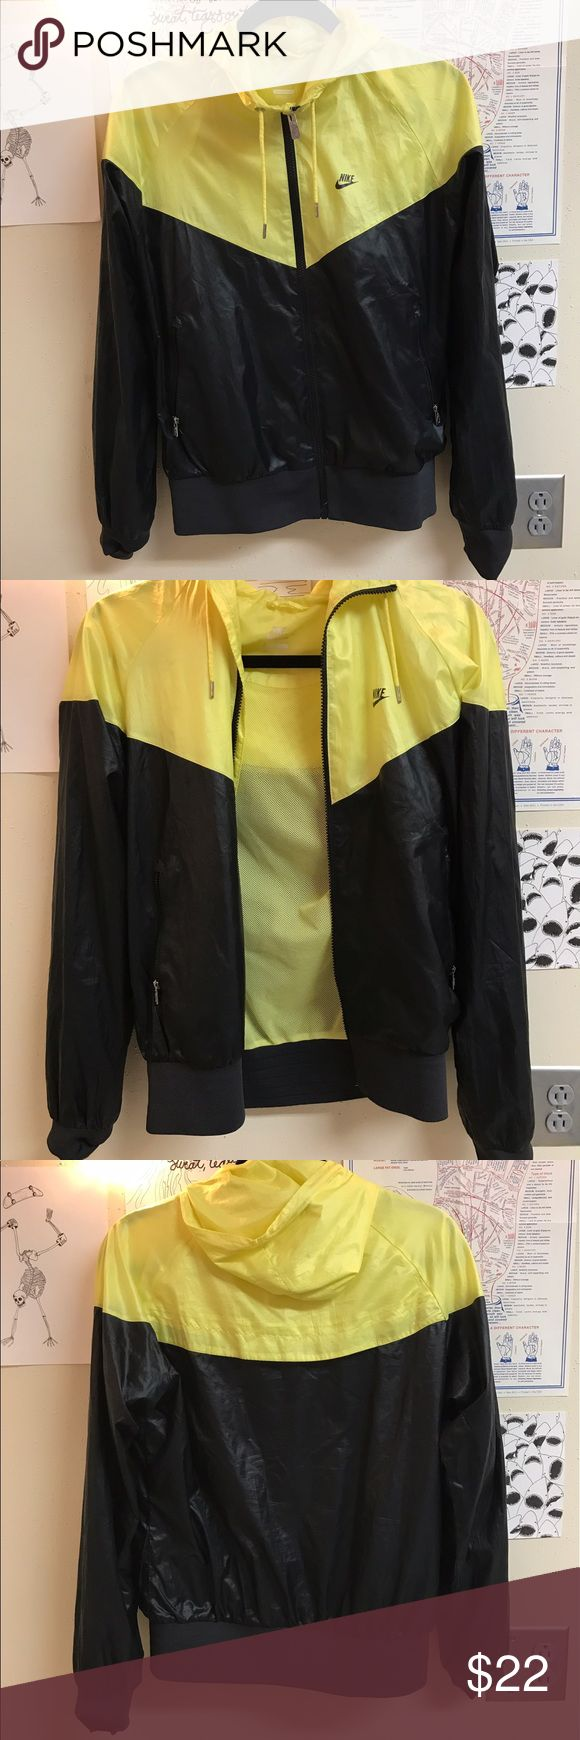 Black & Yellow Nike Windrunner jacket Good condition! I just don't wear it anymore.  Nike windbreaker jacket, silver metal zippers, comfortable, stylish, breathable and water resistant. Smoke free home. Open to offers!! Nike Jackets & Coats